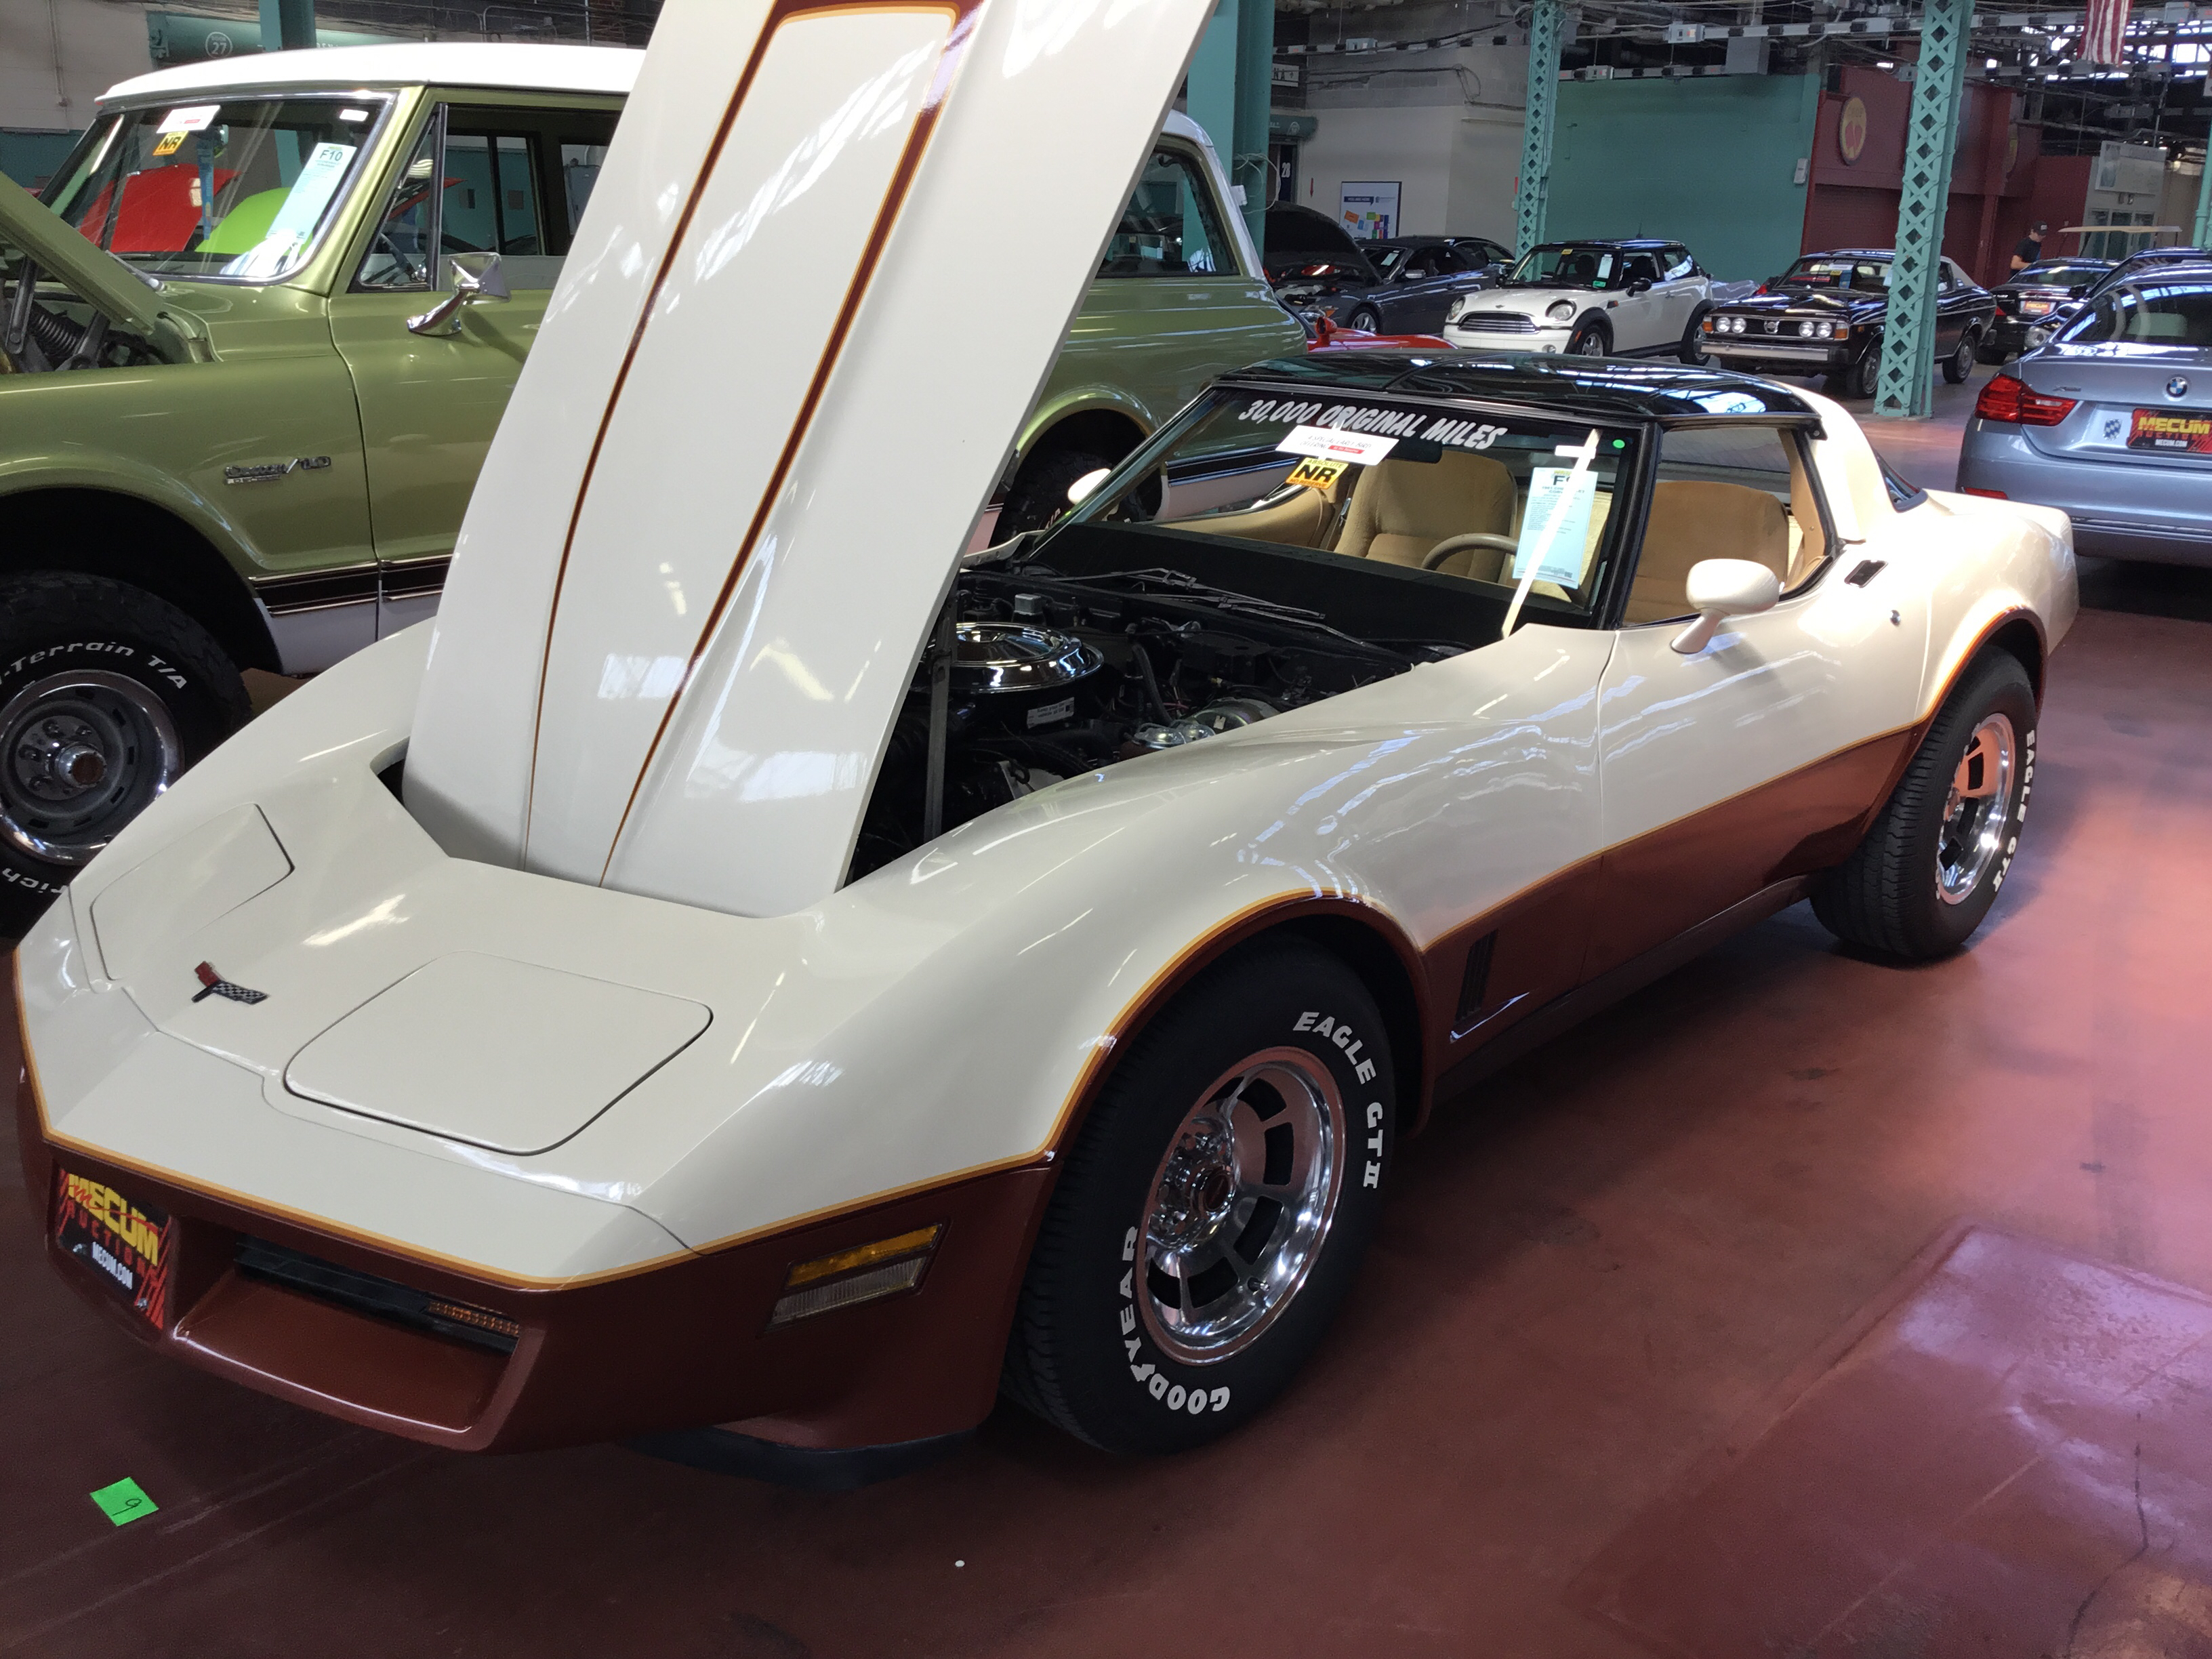 1981 Chevrolet Corvette Values | Hagerty Valuation Tool®